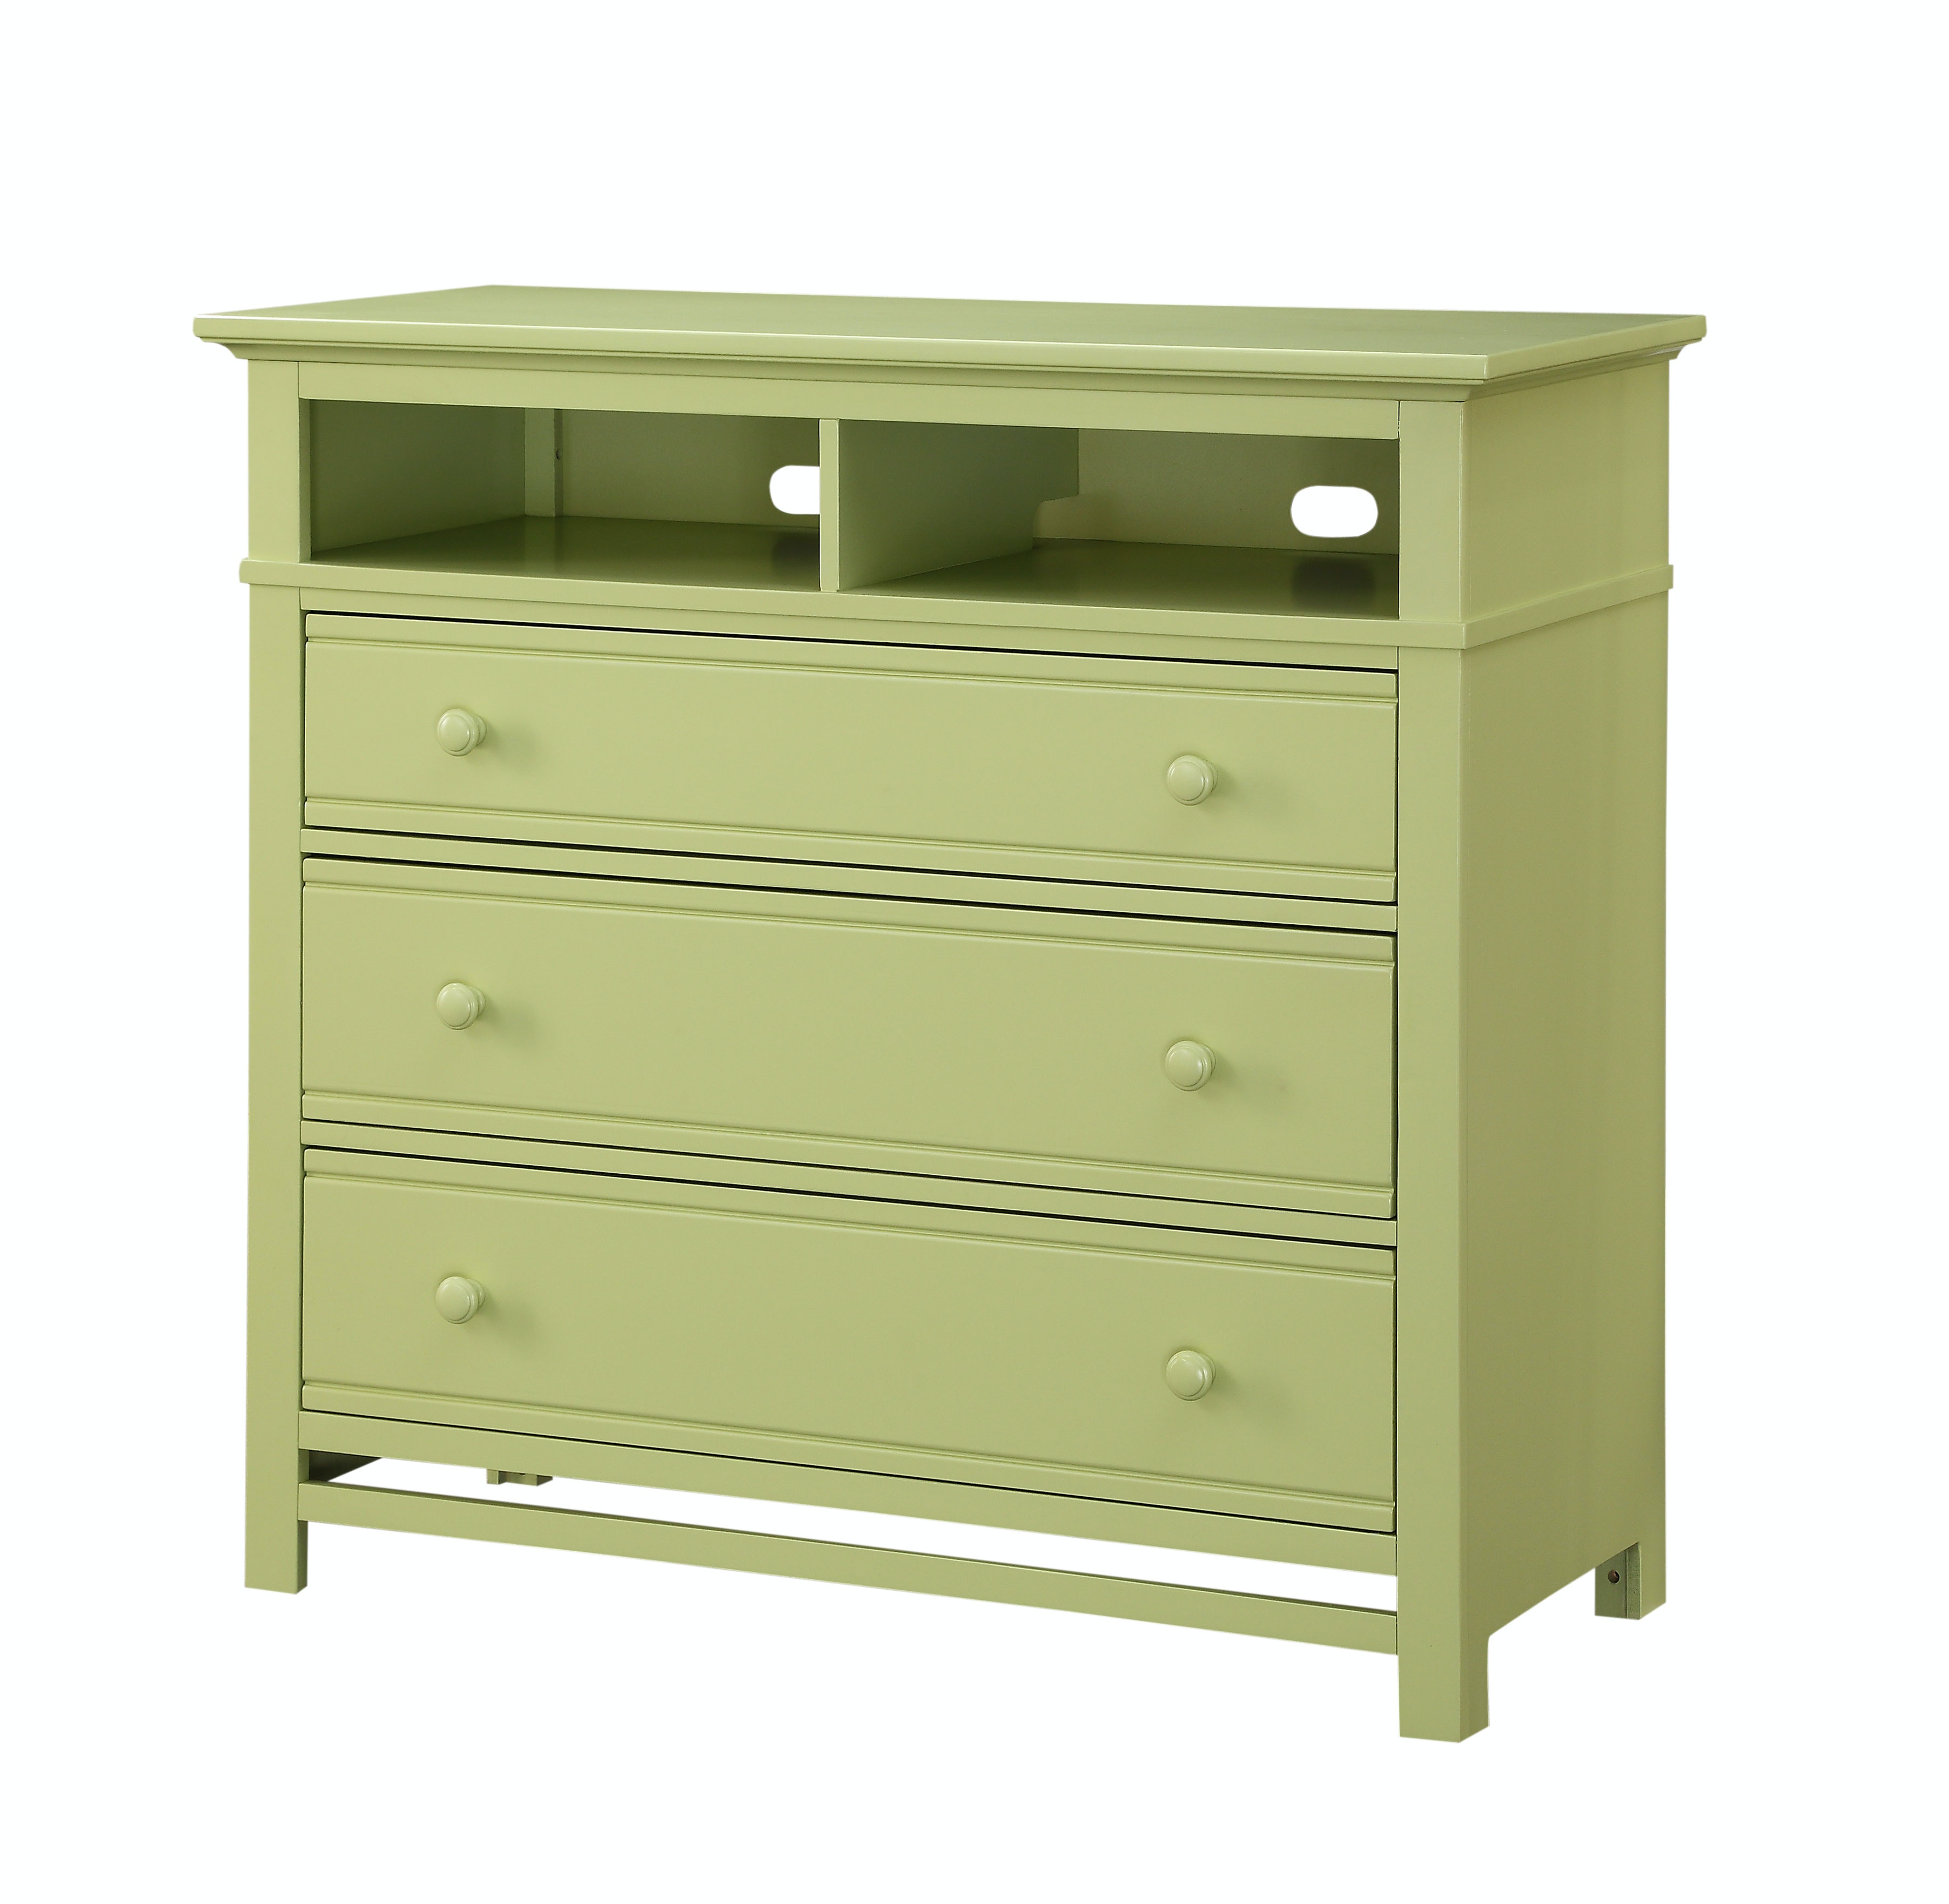 110 160. Colors Media Chest ...